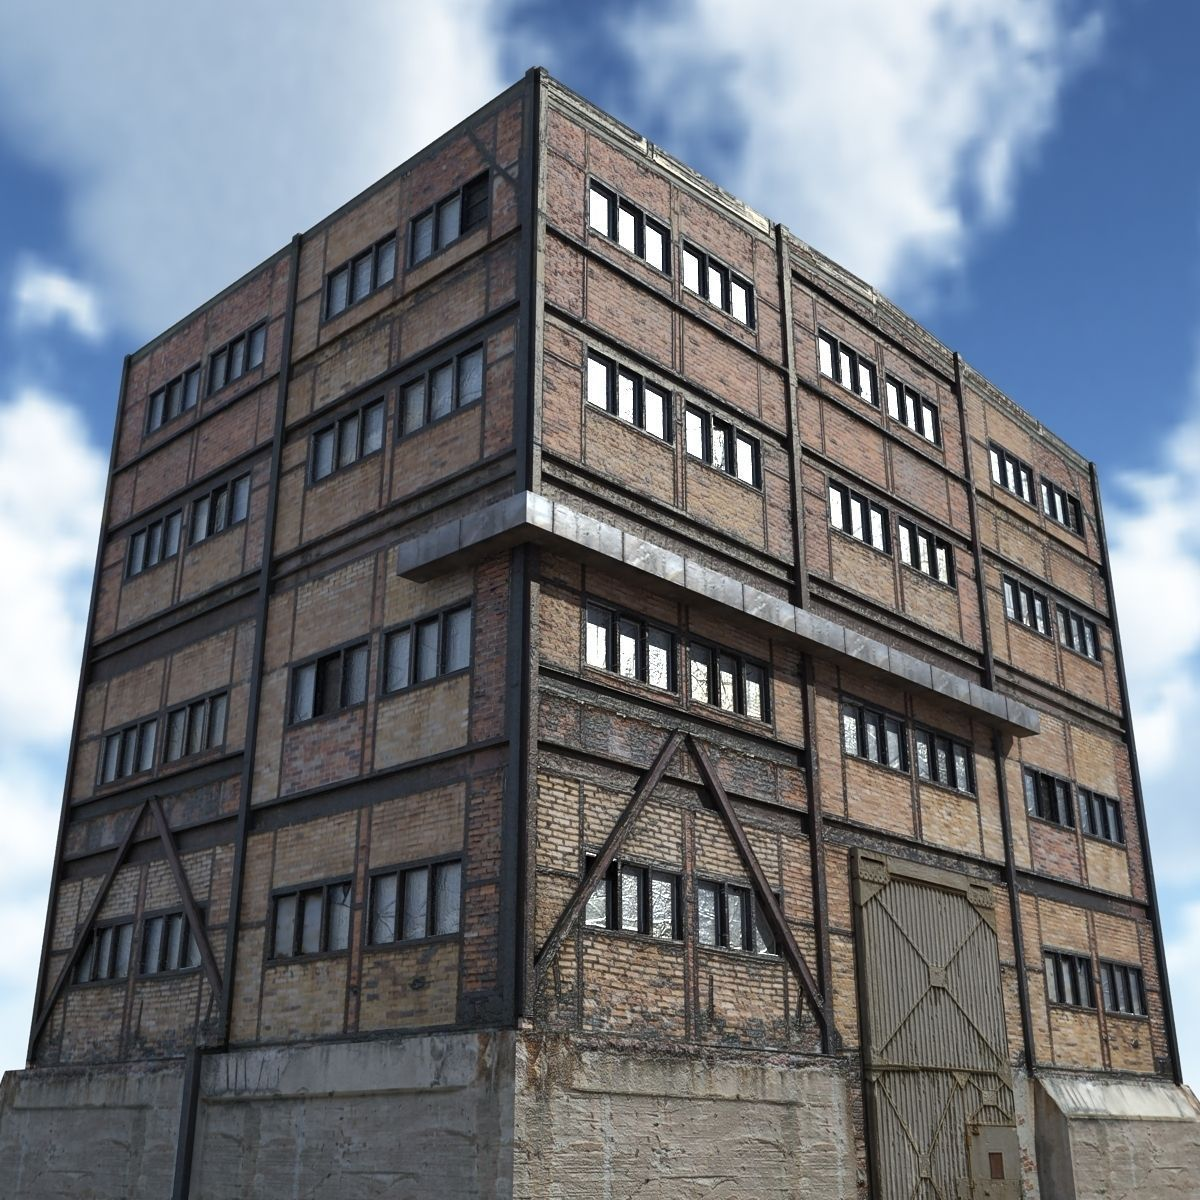 Old Factory Low Poly 3d Building 3D Model Game Ready .max